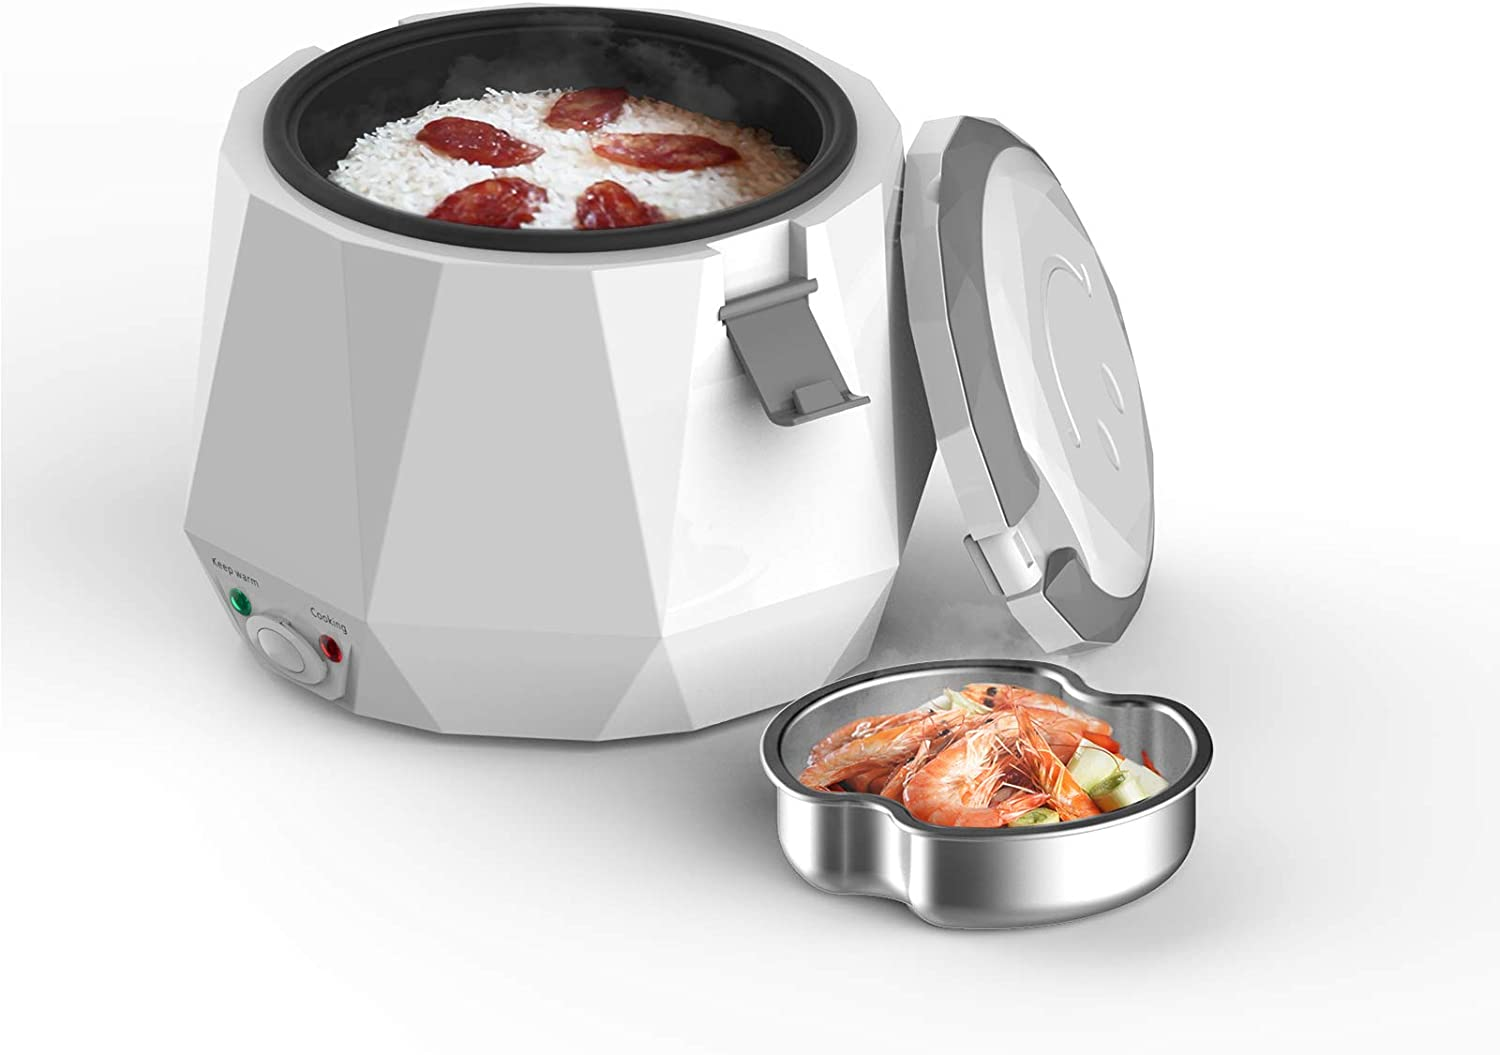 Mini Rice Cooker,Travel Rice Cooker Small with Non-stick Pot,Keep Warm Function, Suitable For 1-2 People - For Cooking Soup, Rice, Stews, Grains & Oatmeal (White)